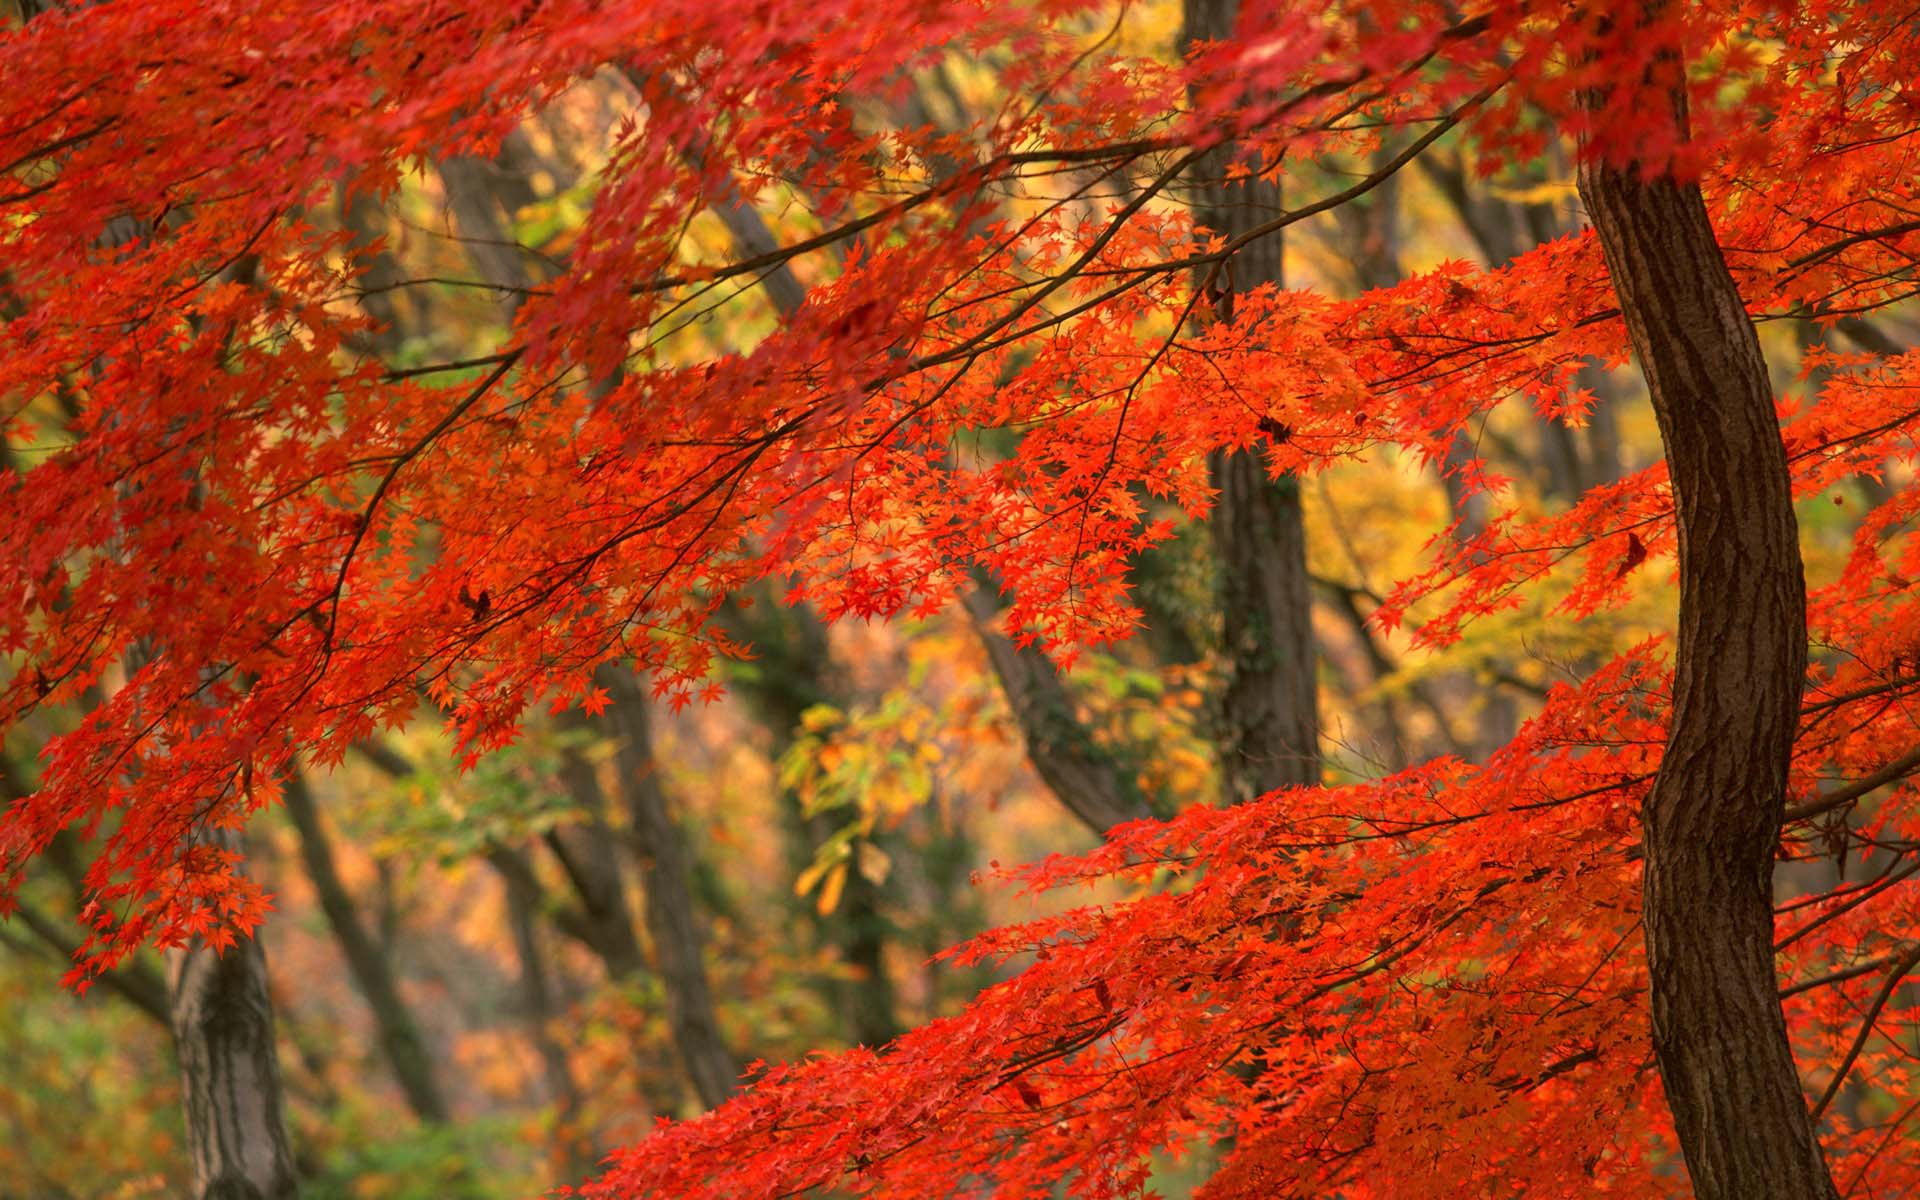 Autumn beauty photo